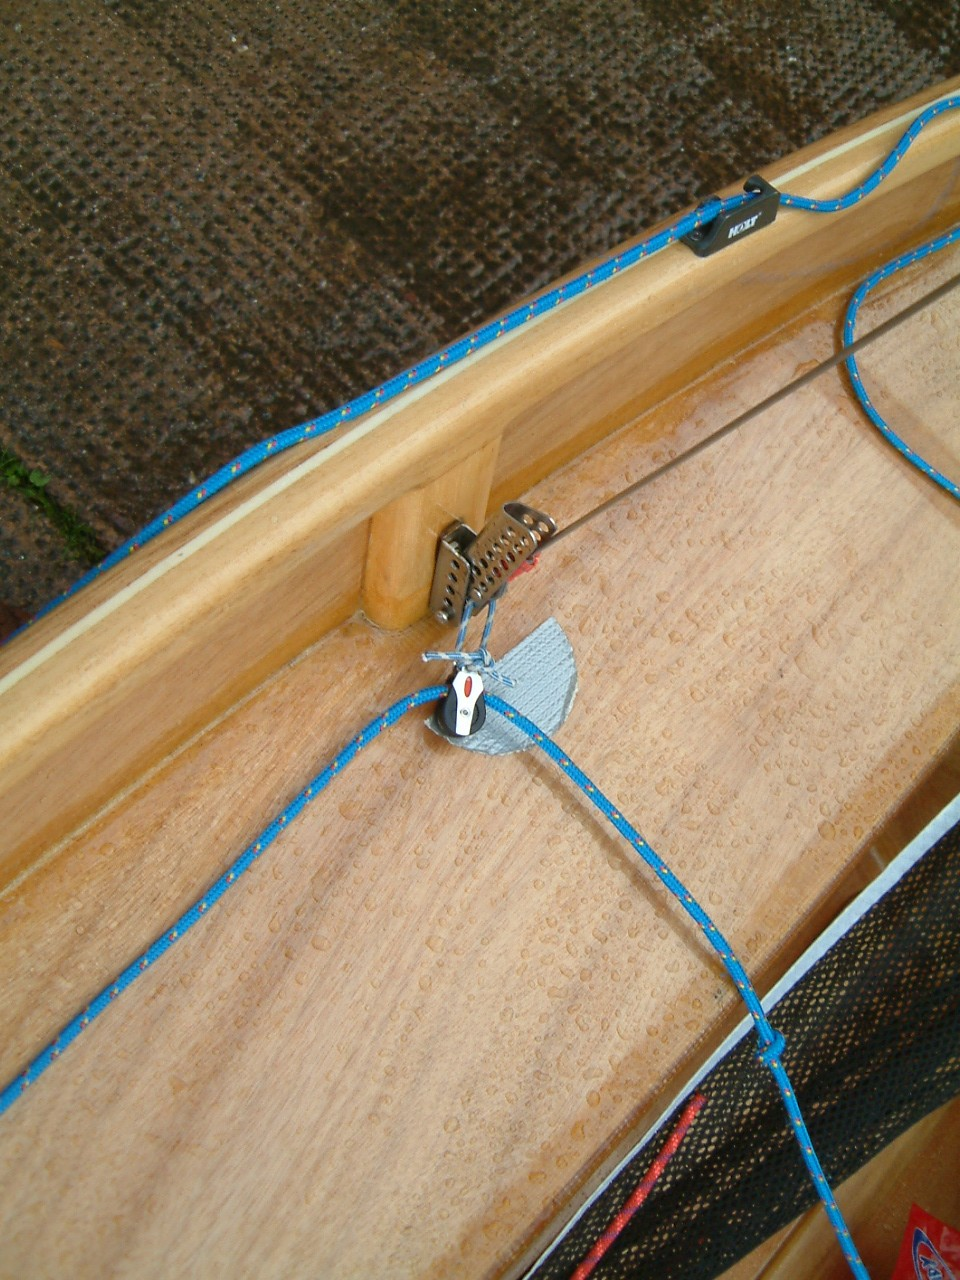 A small block attached to the shroud adjuster plate of a Mirror dinghy